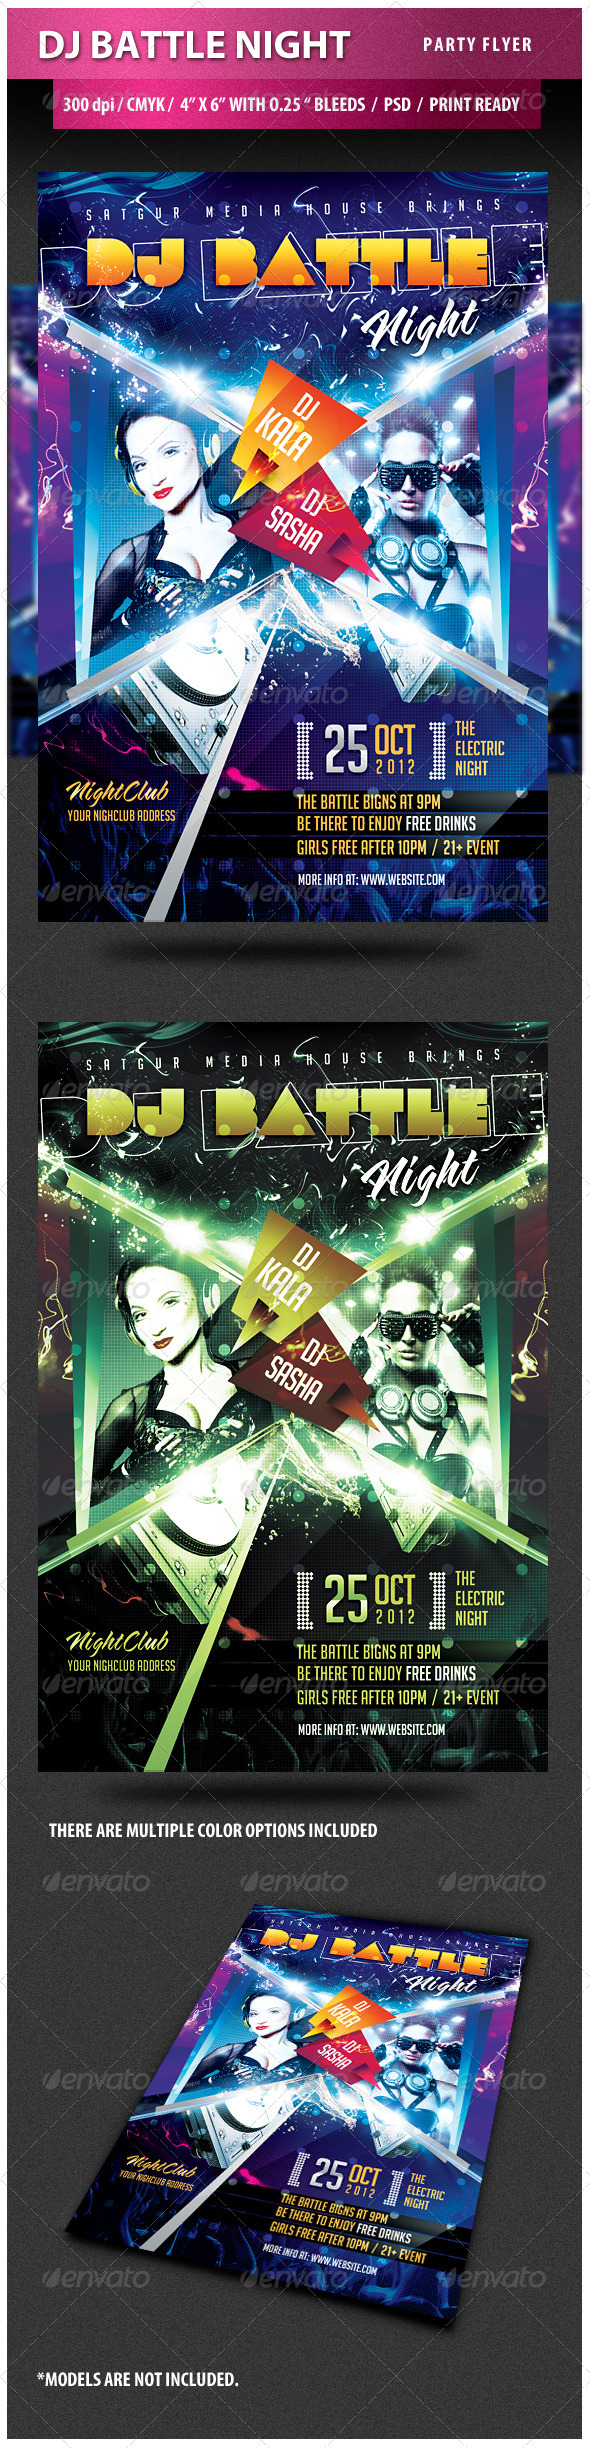 DJ Battle Night Party Flyer - Clubs & Parties Events